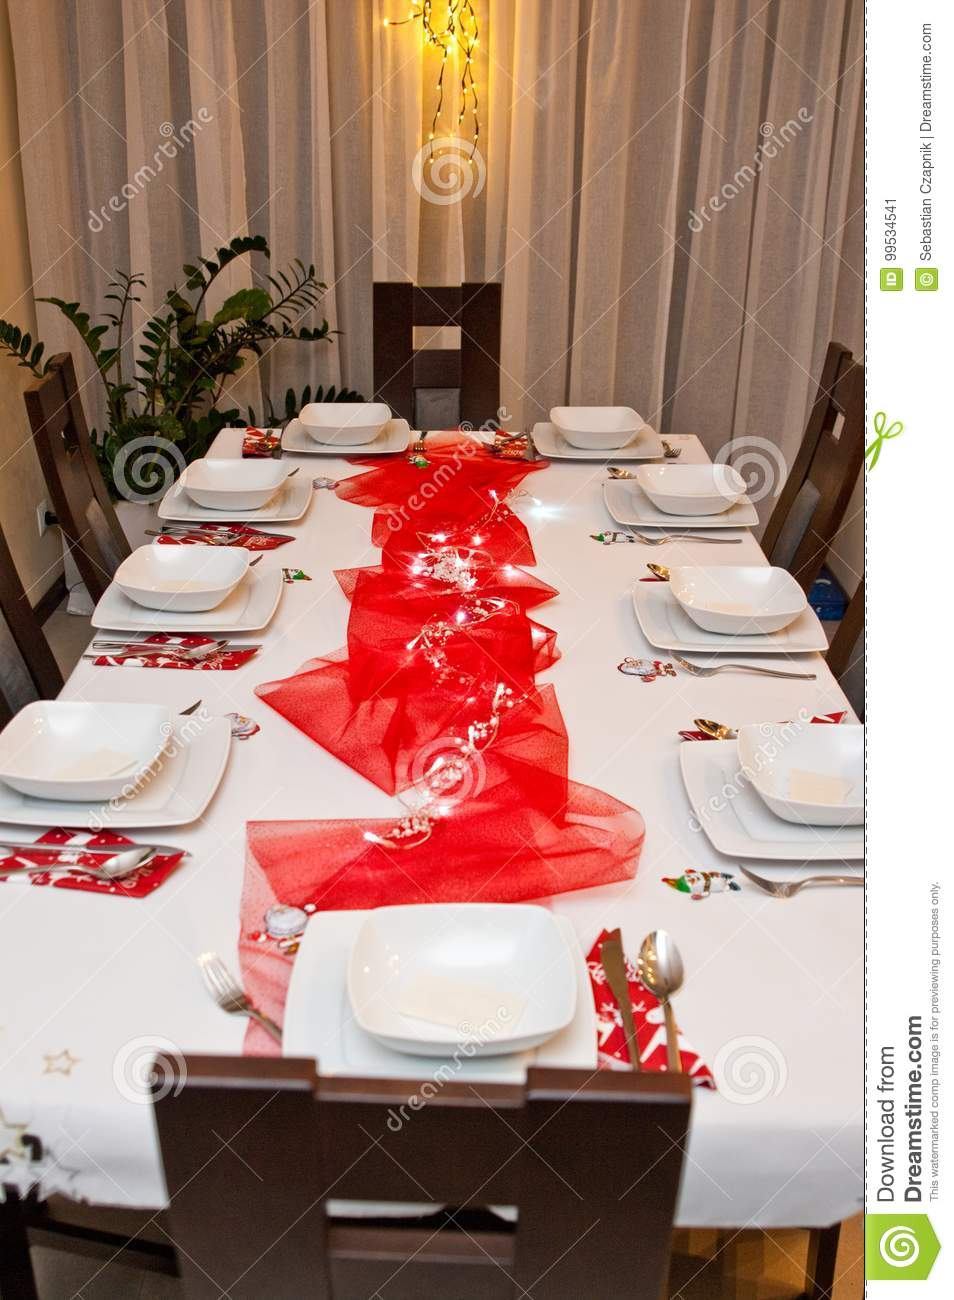 Christmas Table Settings.Christmas Table Setting With White Plates And Red